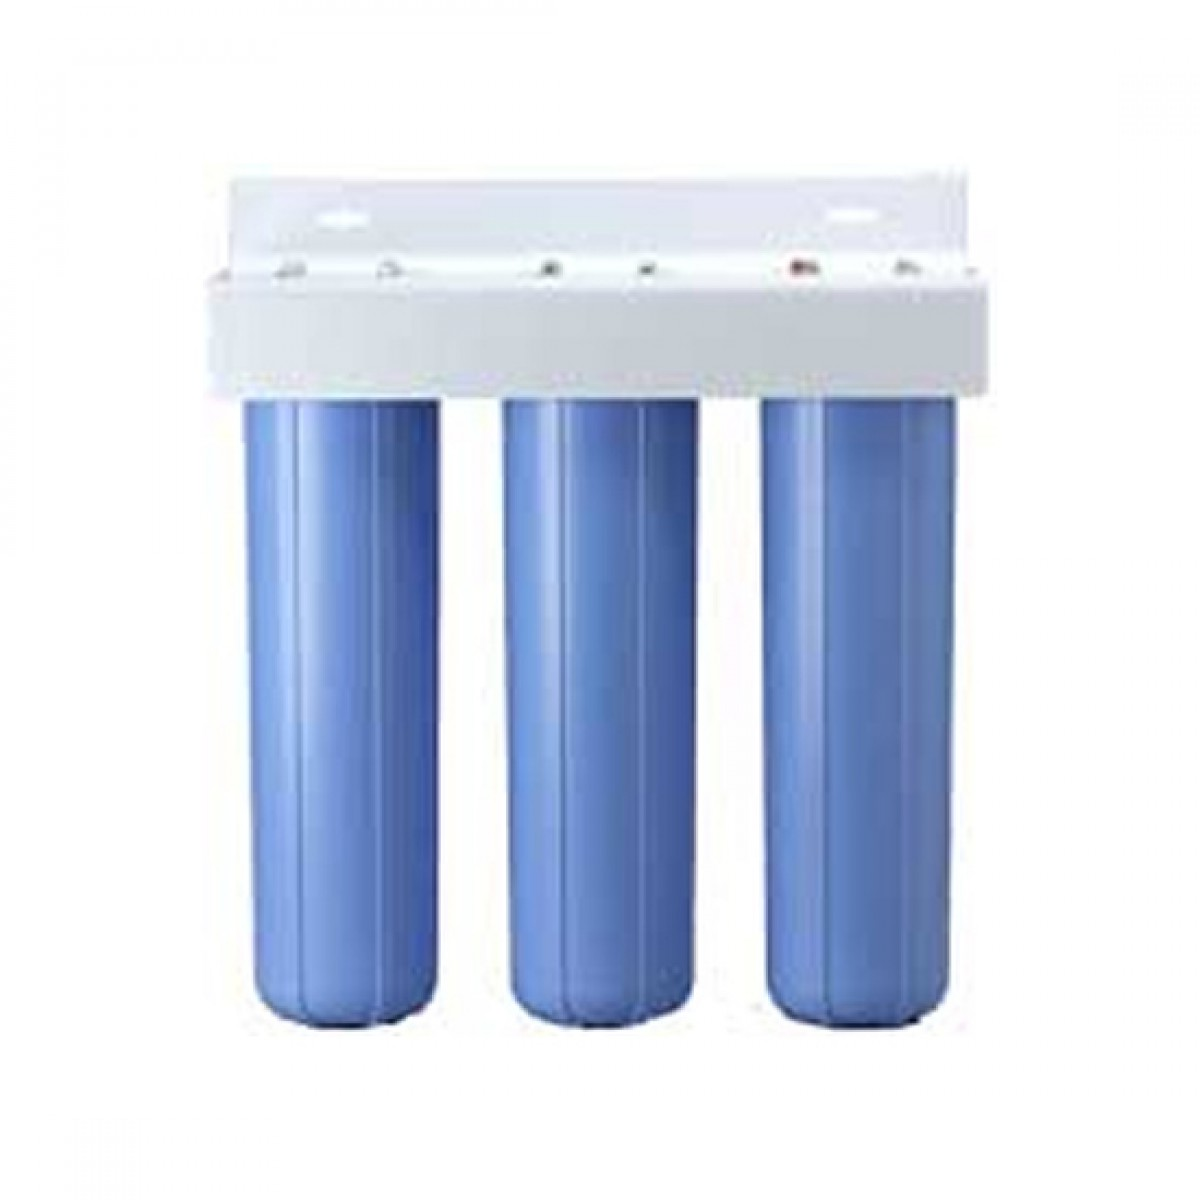 water filtration Aquasana optimh2o is the most efficient under counter water filter of the moment, as it removes up to 74 water contaminants.